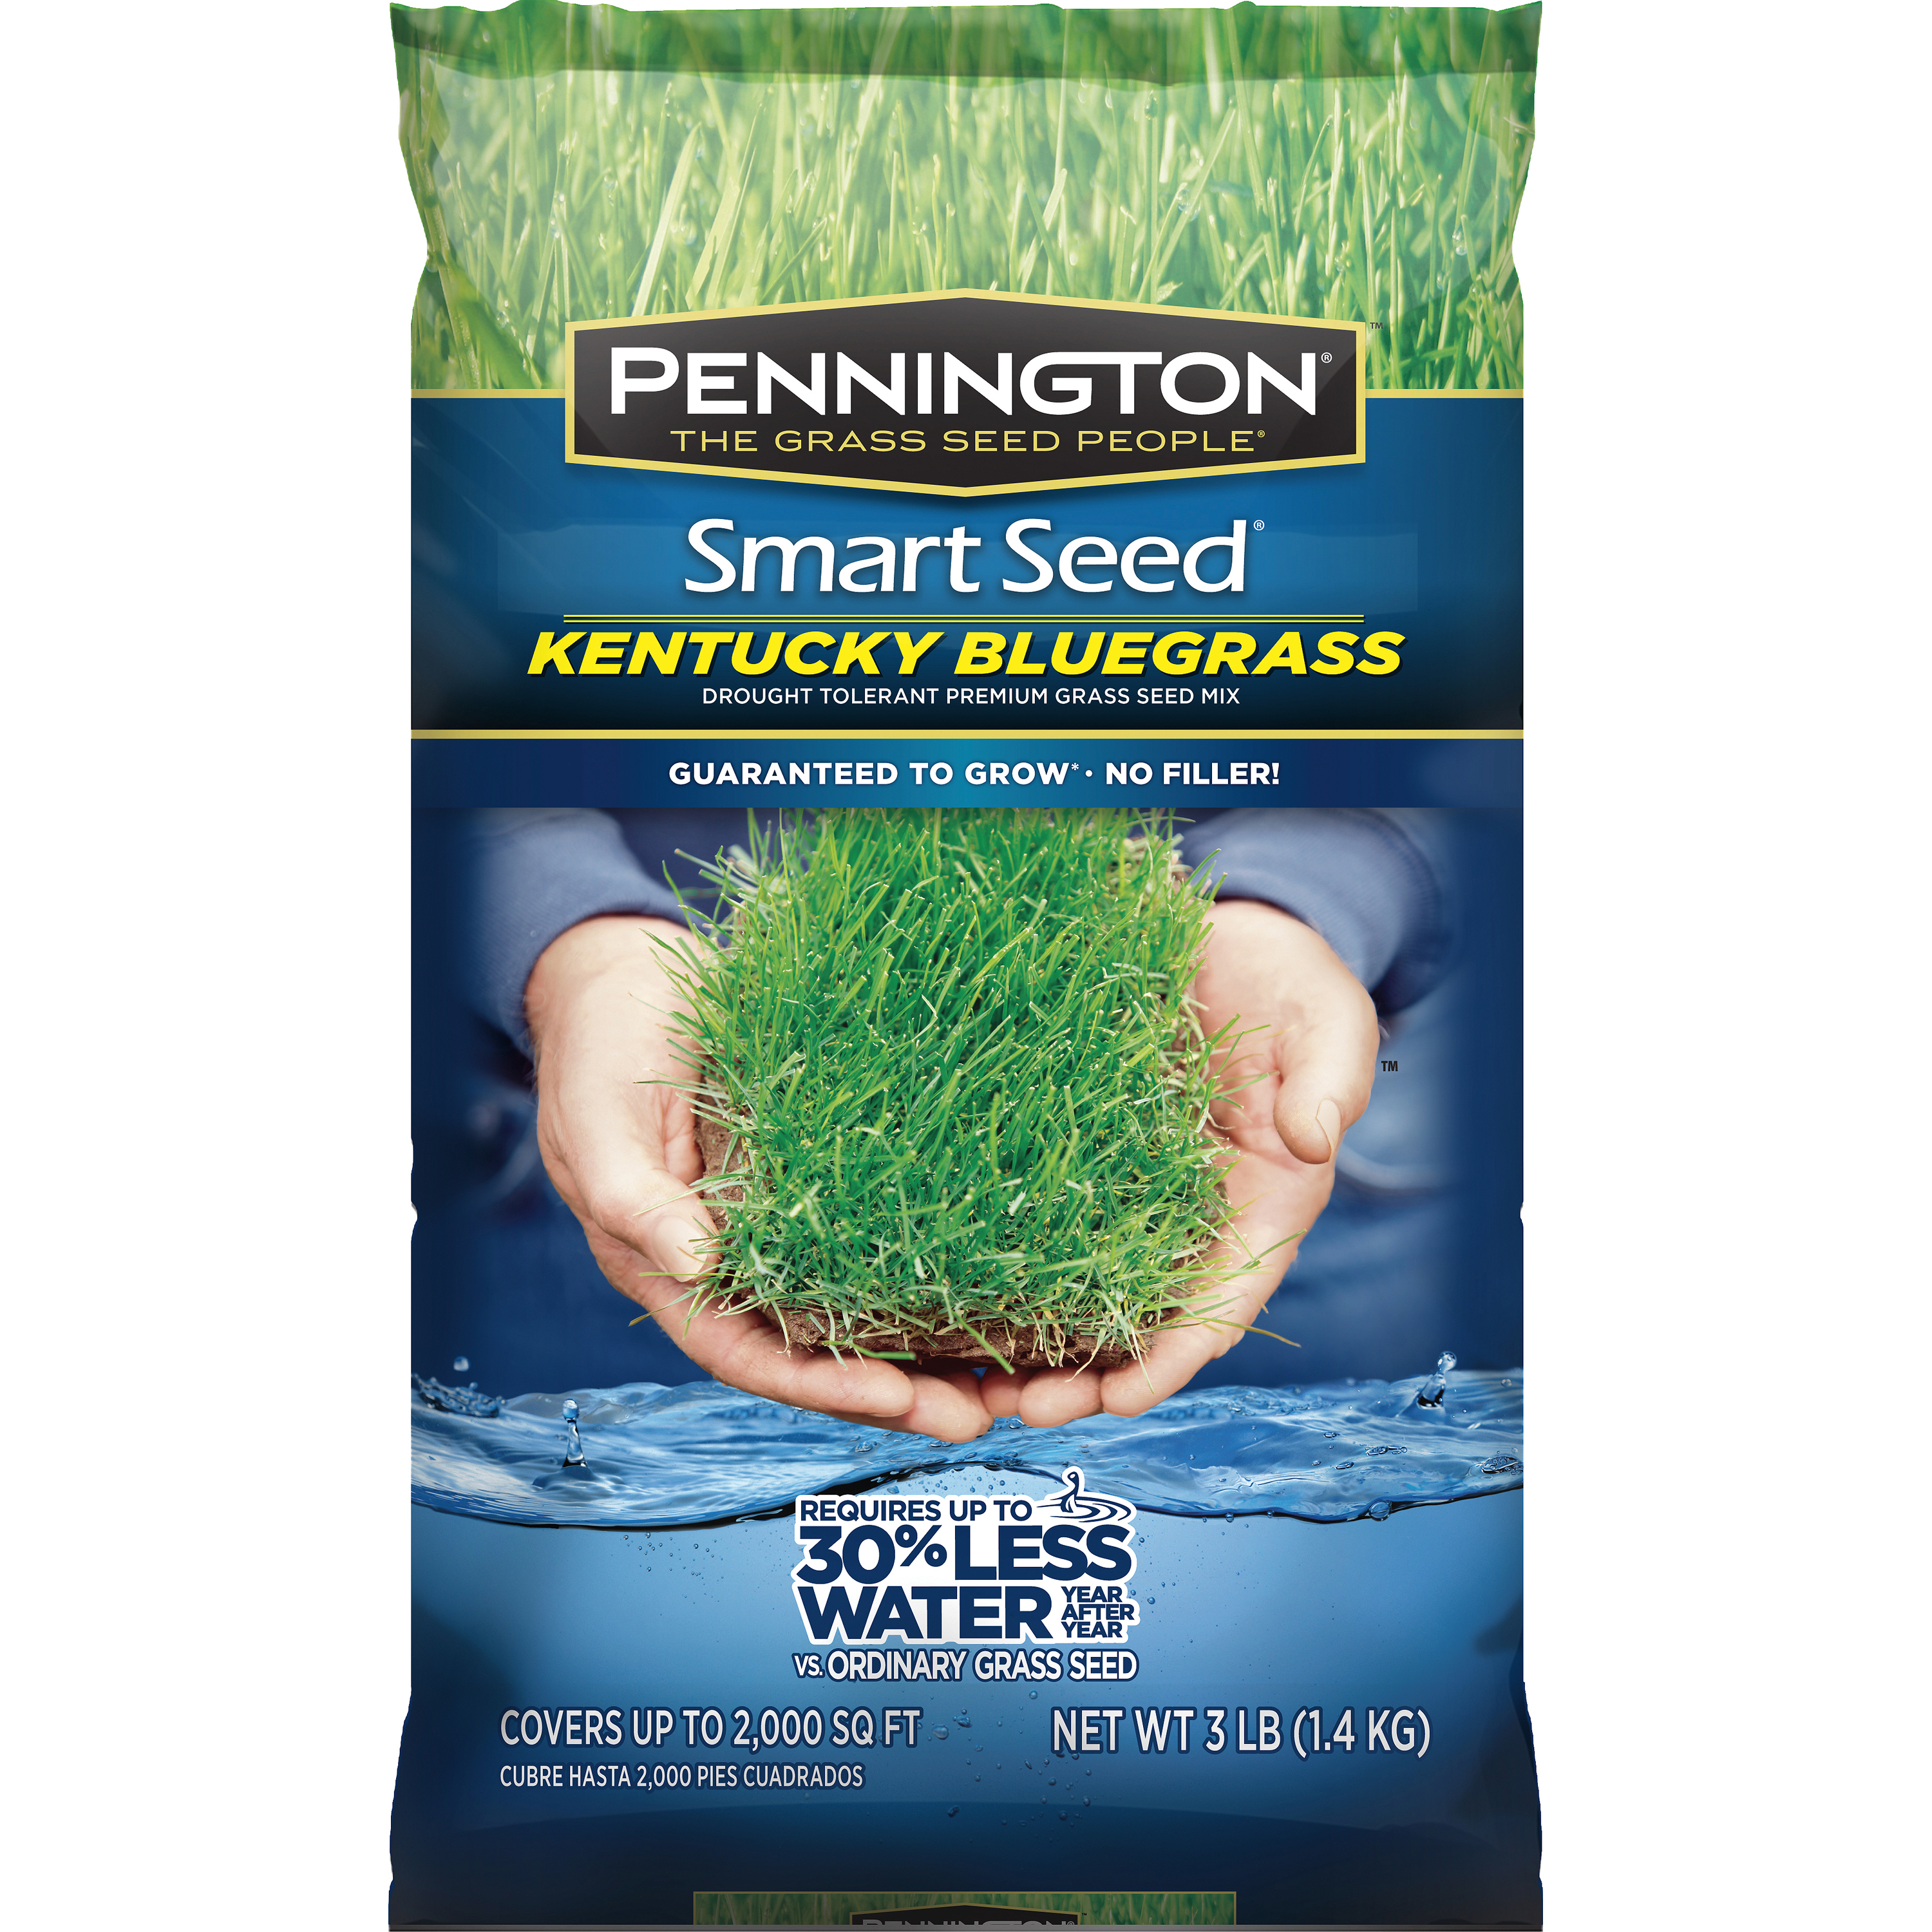 Pennington Smart Seed Kentucky Bluegrass Blend, 3 lbs